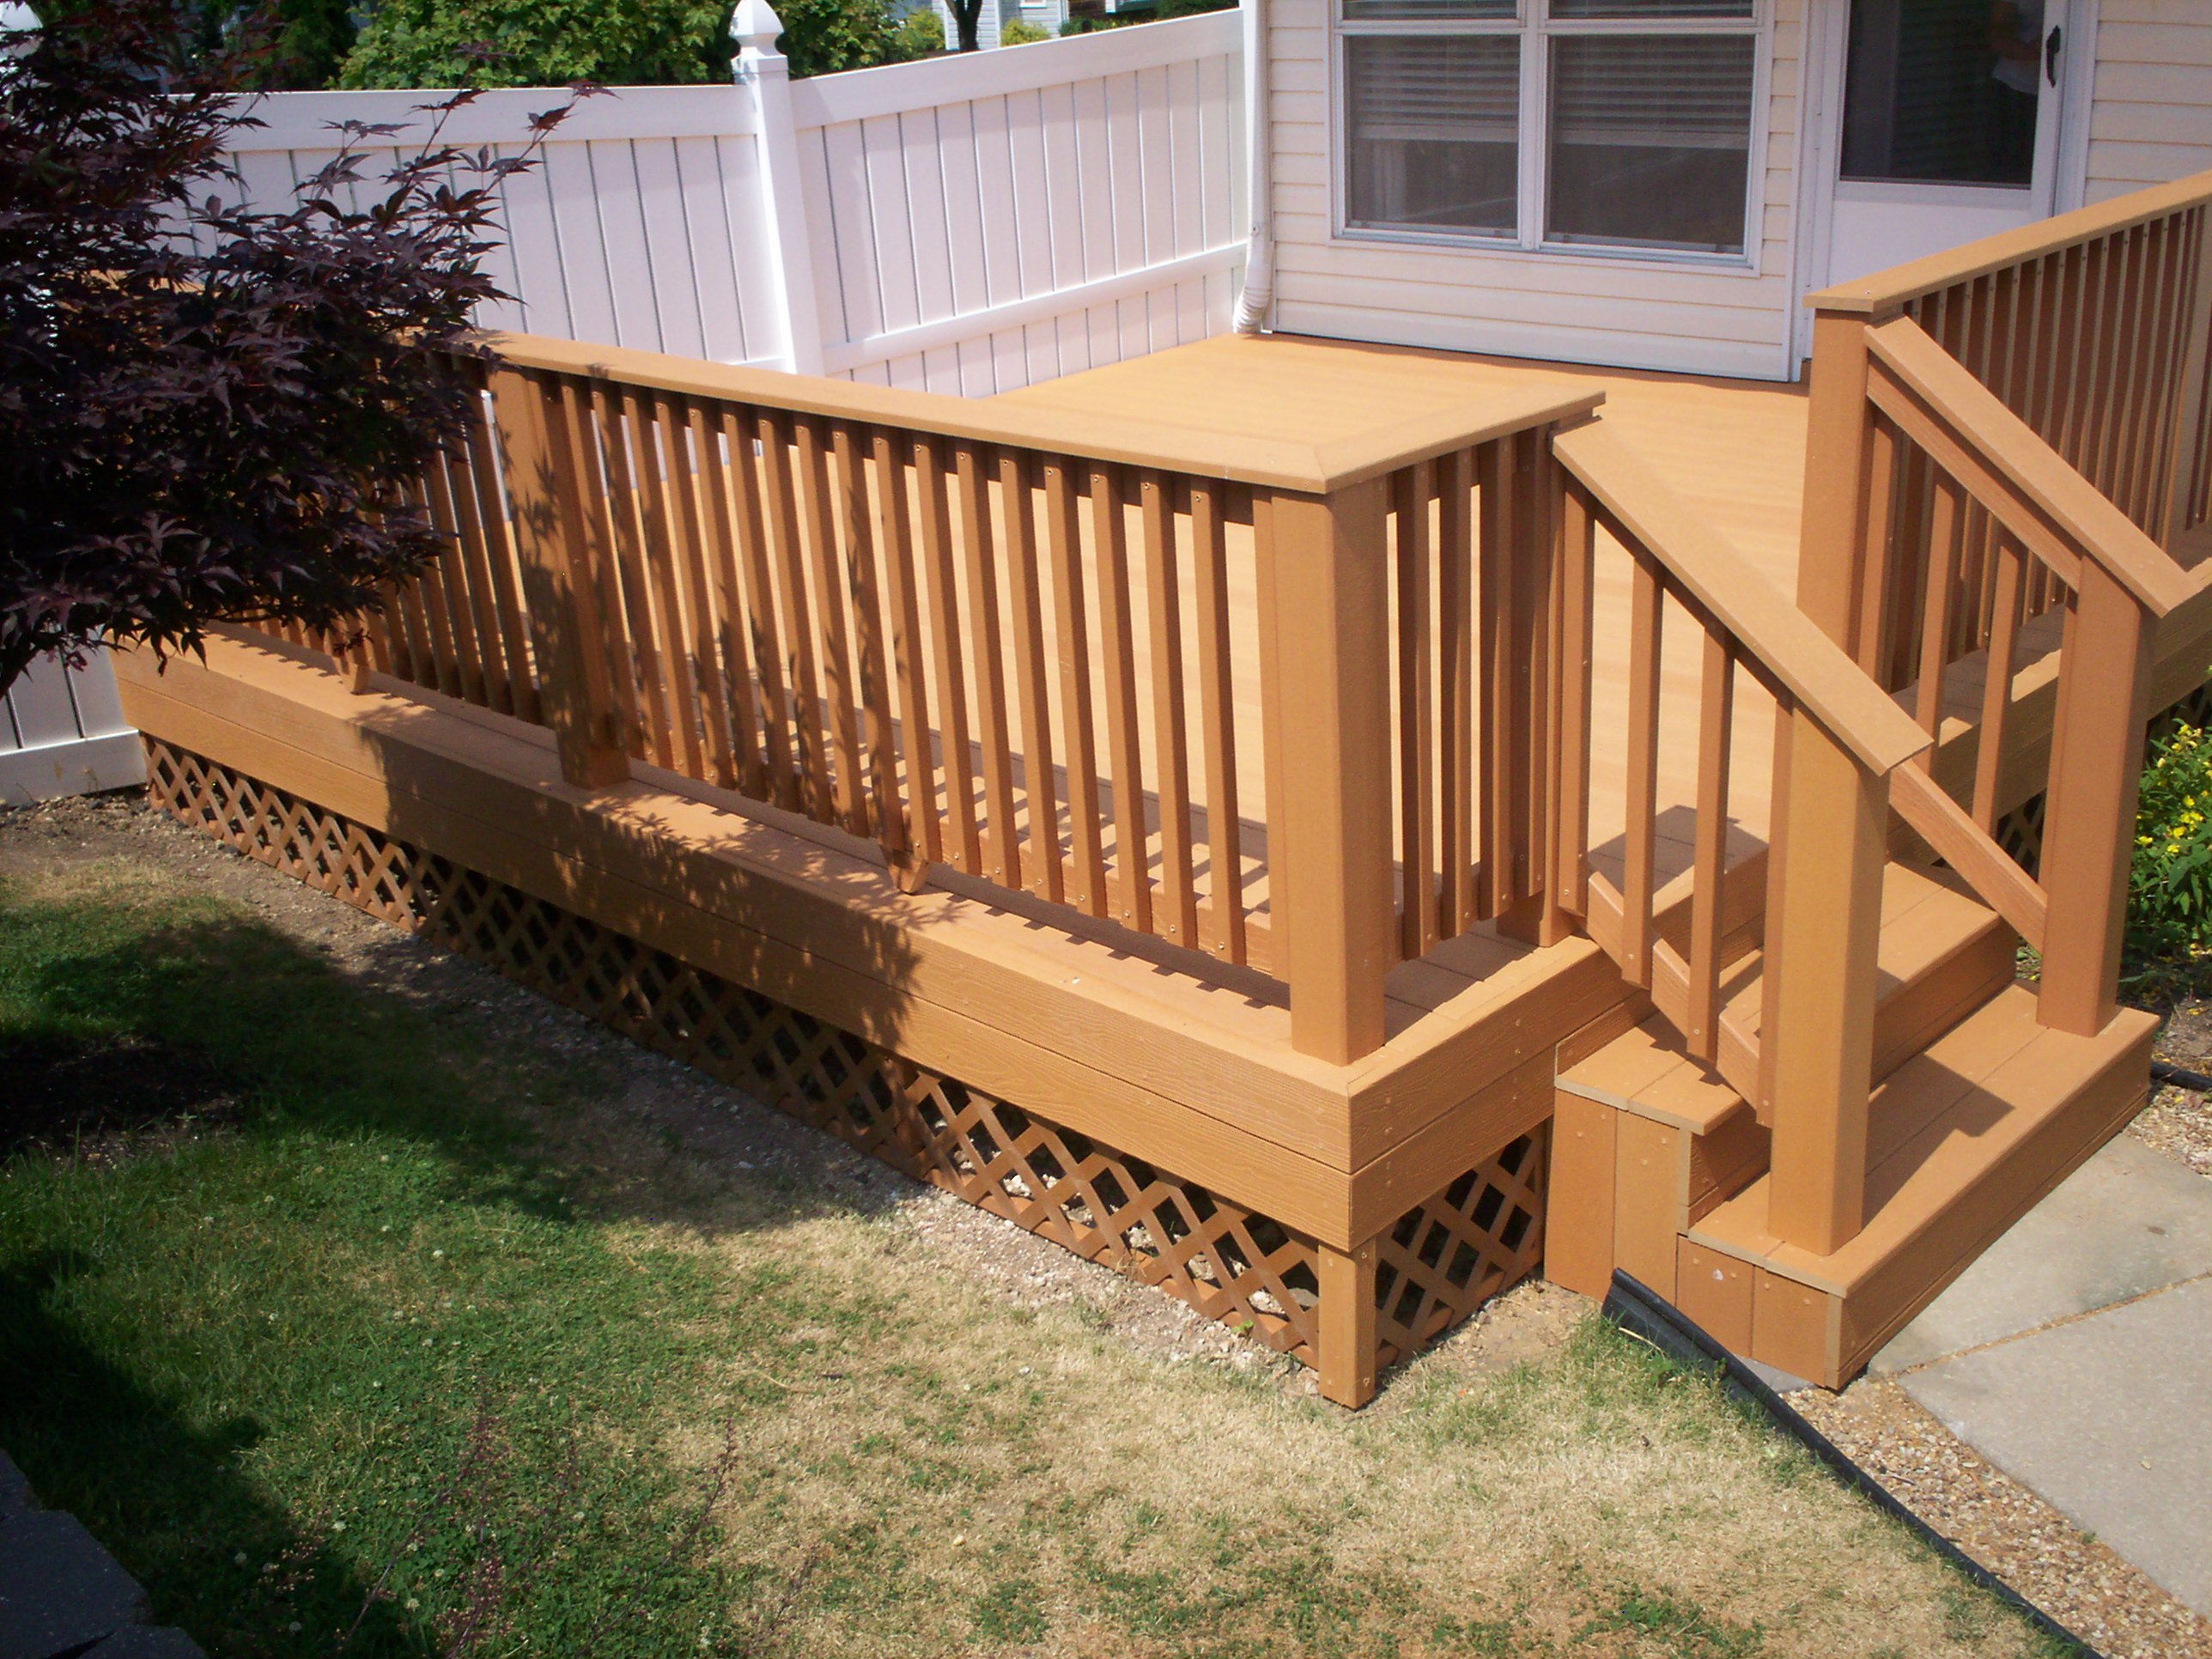 Deck Design Ideas: Real Wood vs. Decks That Look Like Wood | St ...